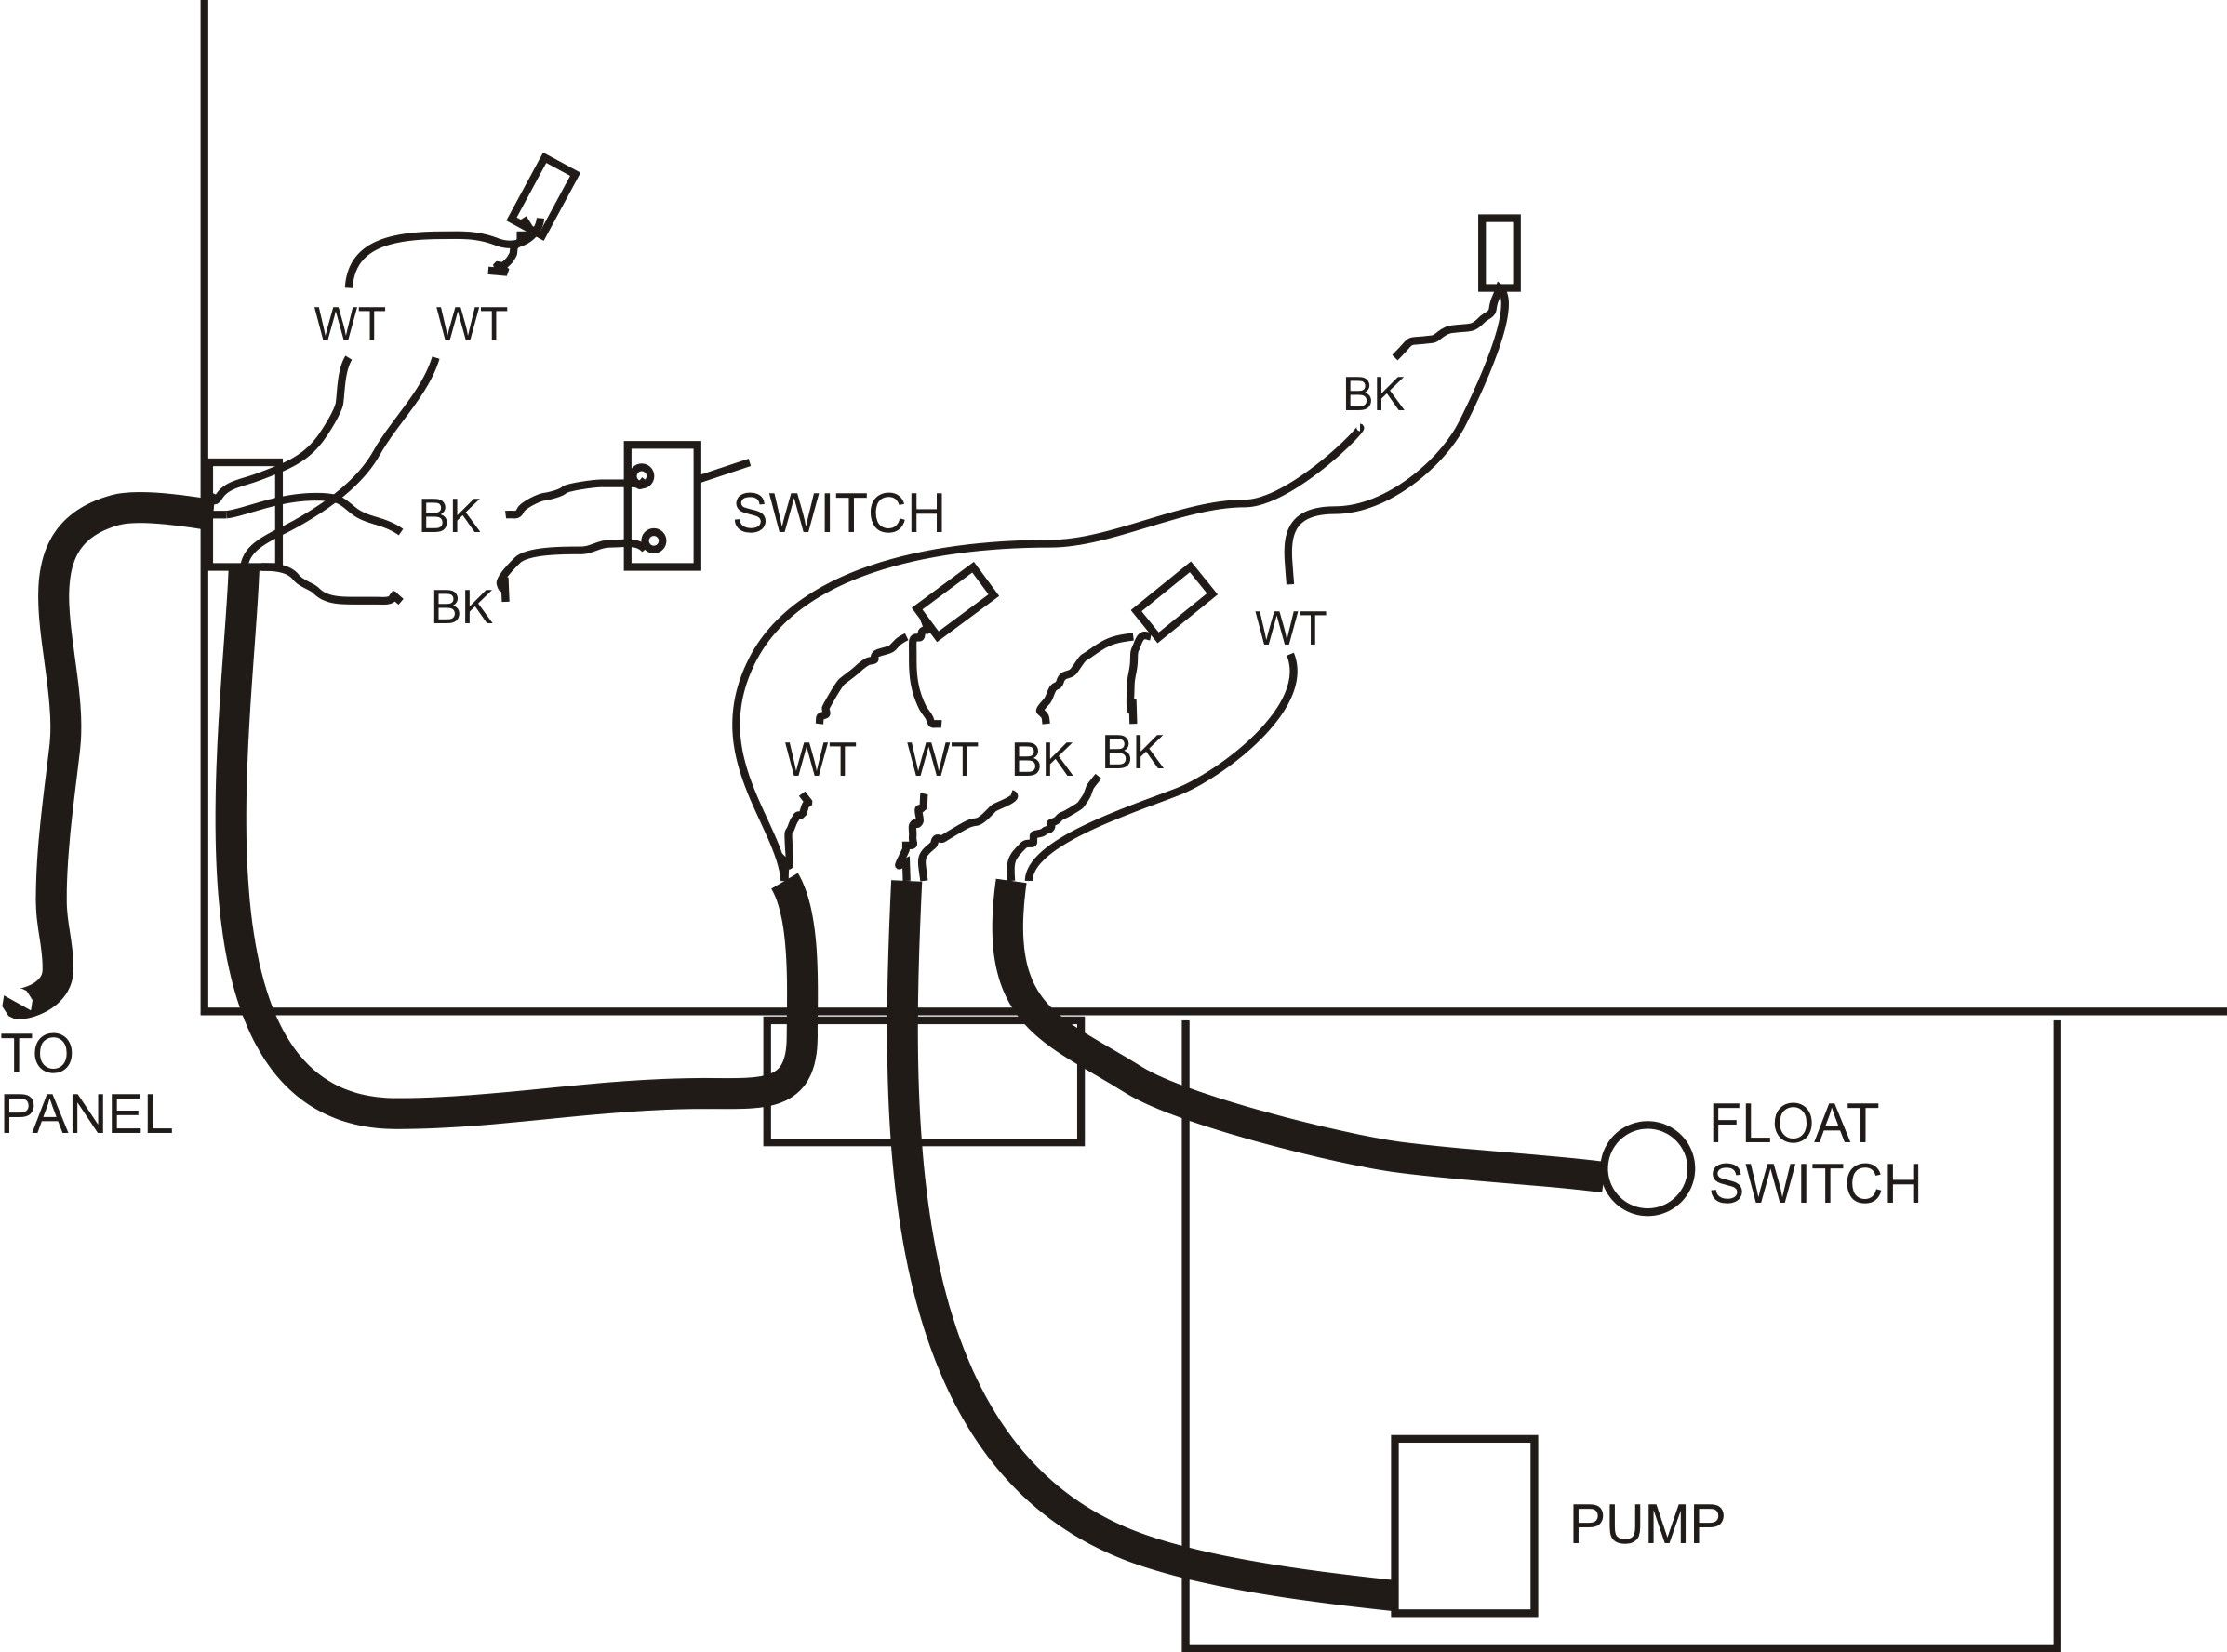 wiring float switch to control well pump